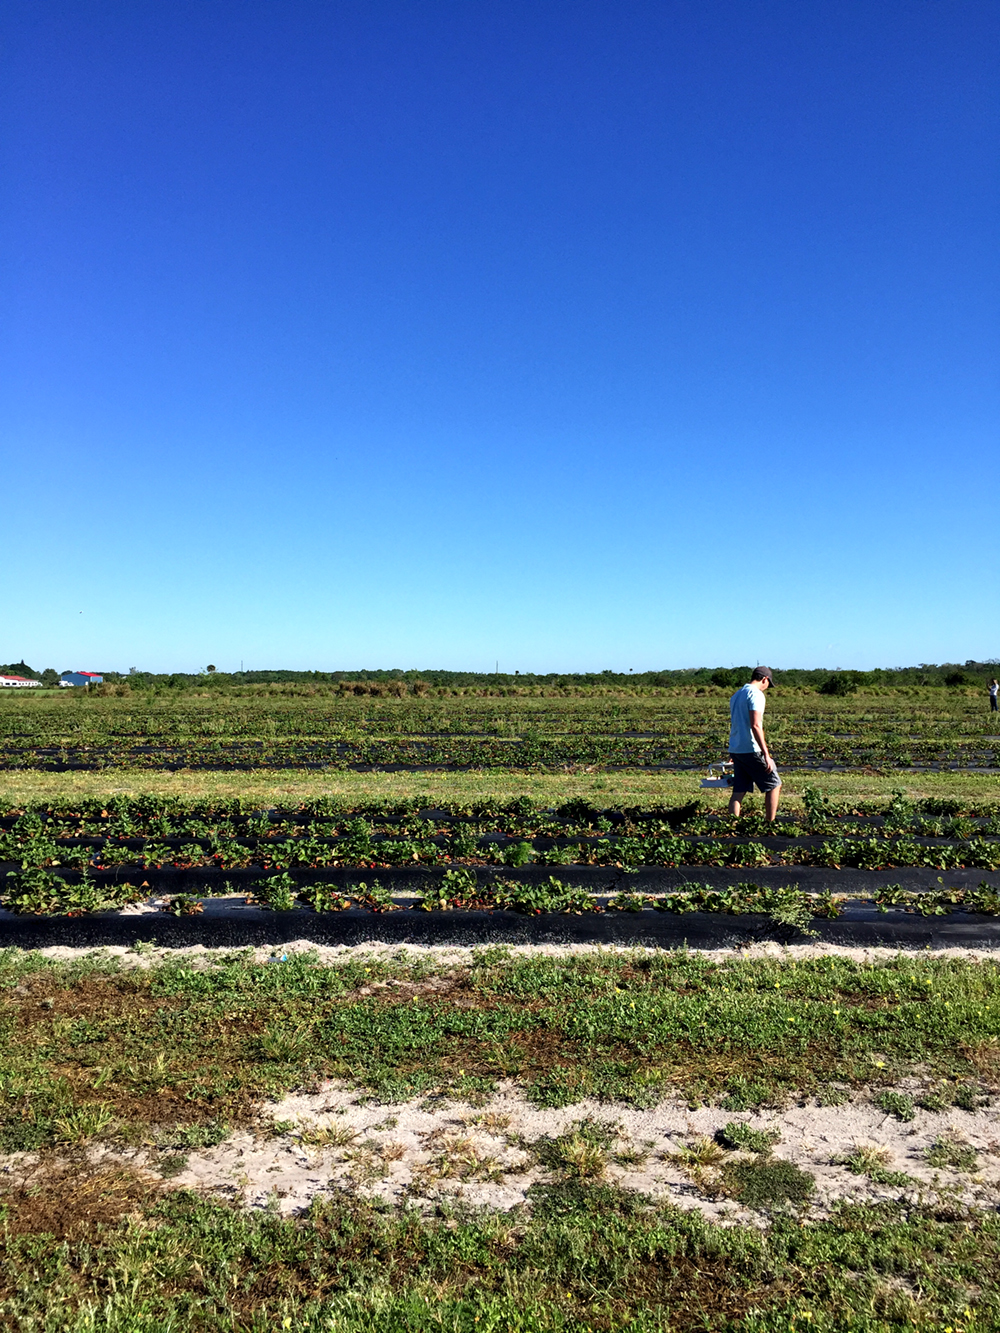 Strawberry Picking at Sledd's Farm